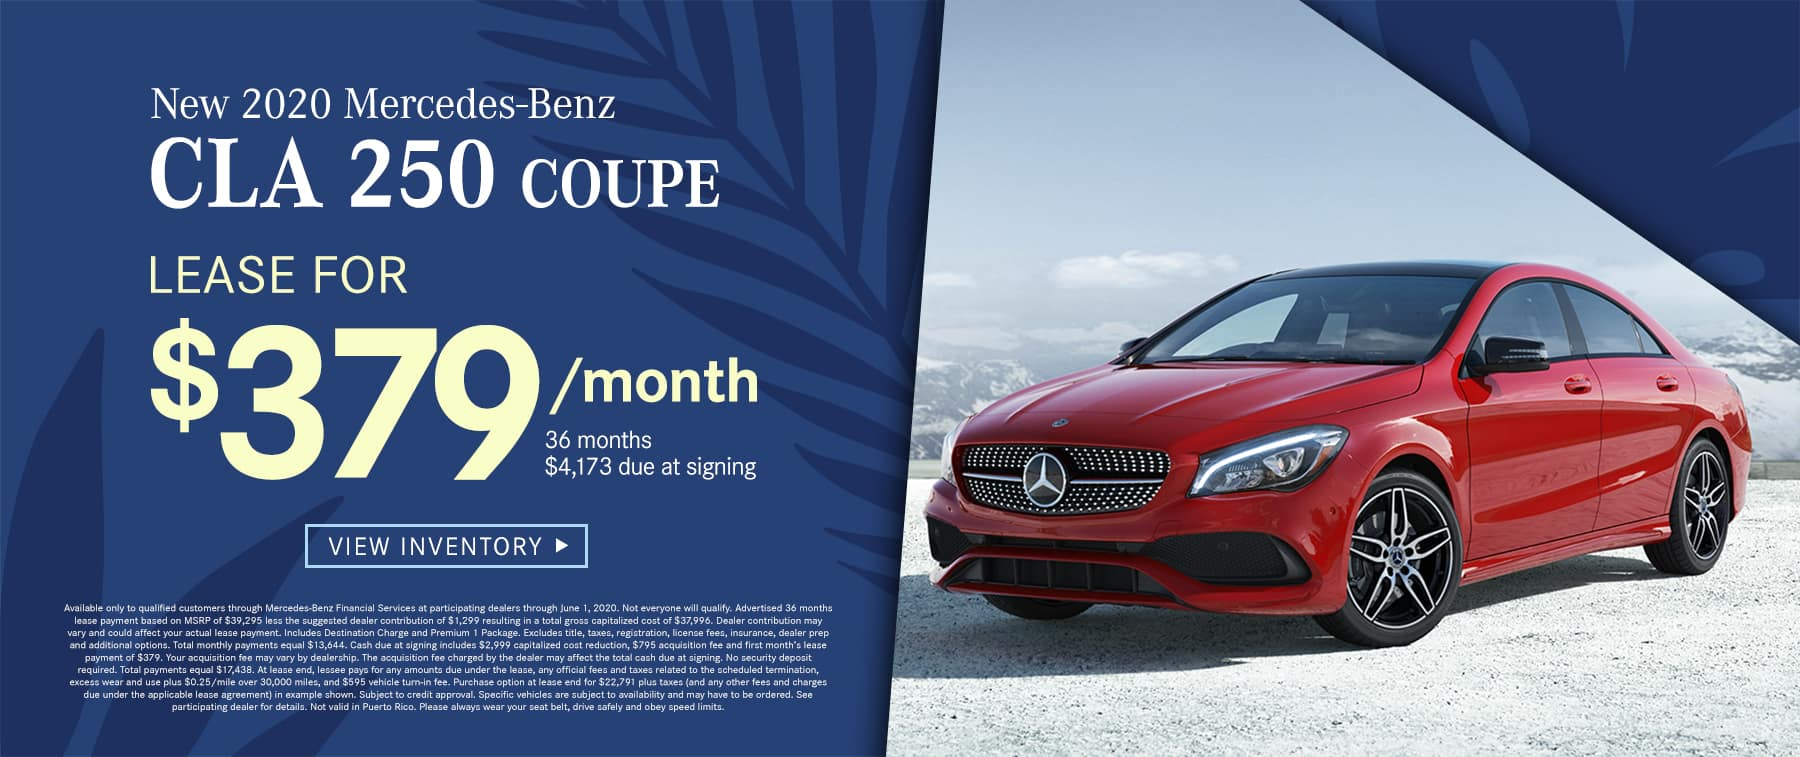 2020 CLA 250 Coupe $379 Per Month 36 Months/10k Miles $4173 Due at signing